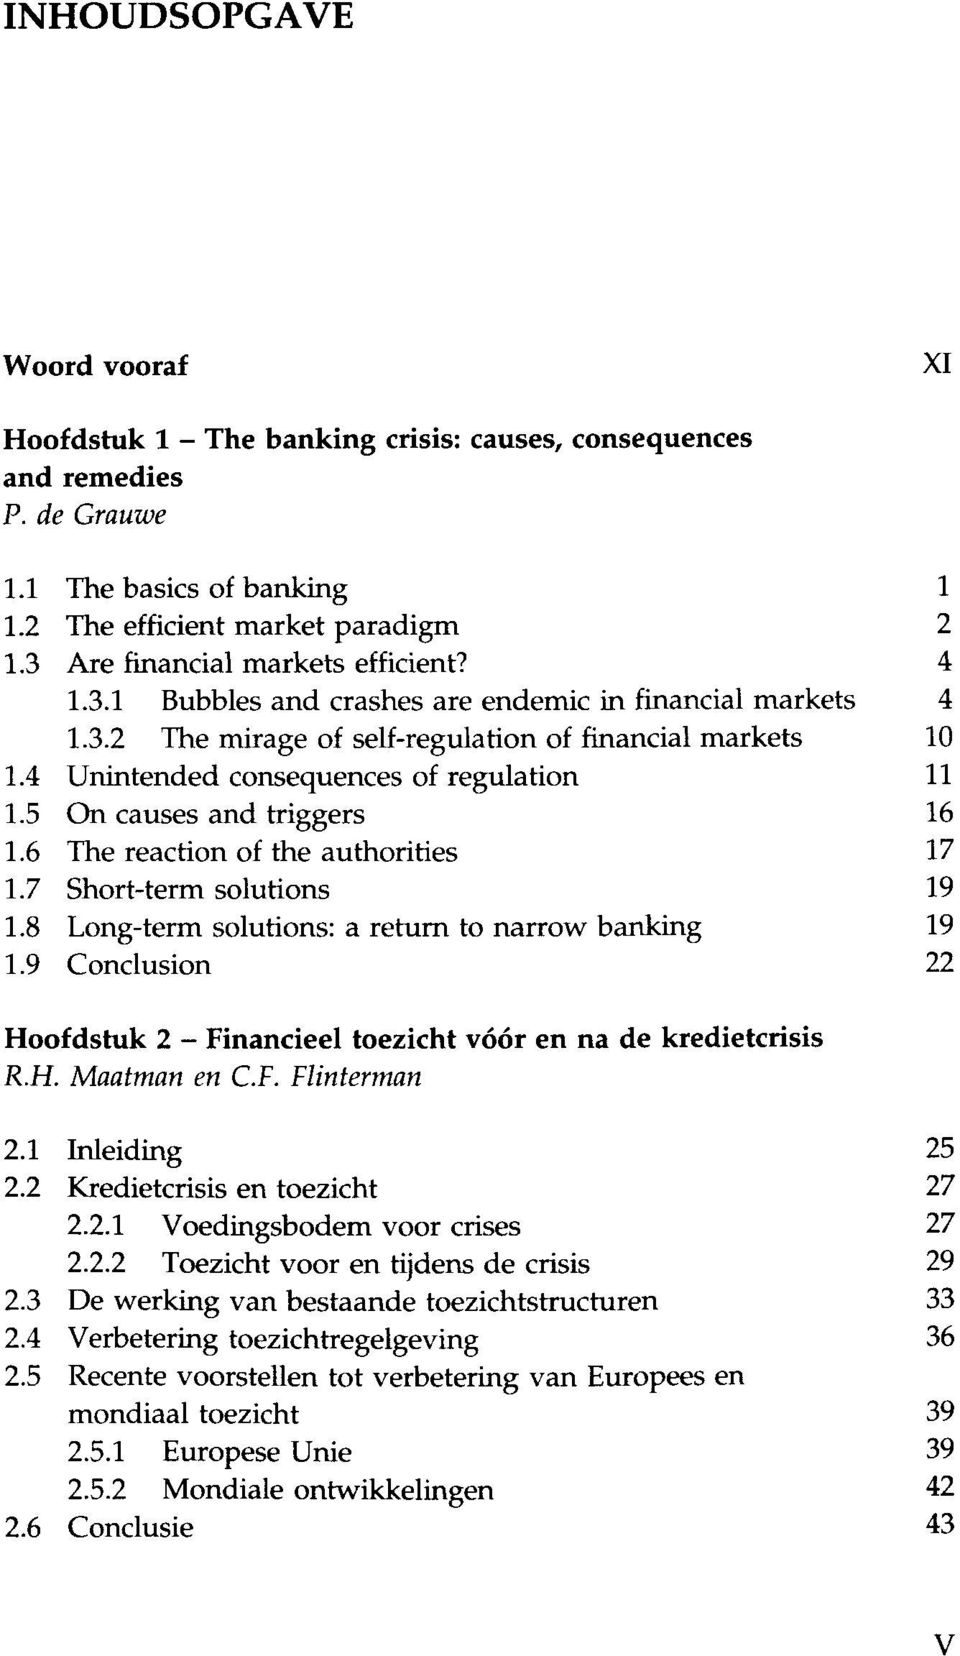 4 Unintended consequences of regulation 11 1.5 On causes and triggers 16 1.6 The reaction of the authorities 17 1.7 Short-term solutions 19 1.8 Long-term solutions: a return to narrow banking 19 1.